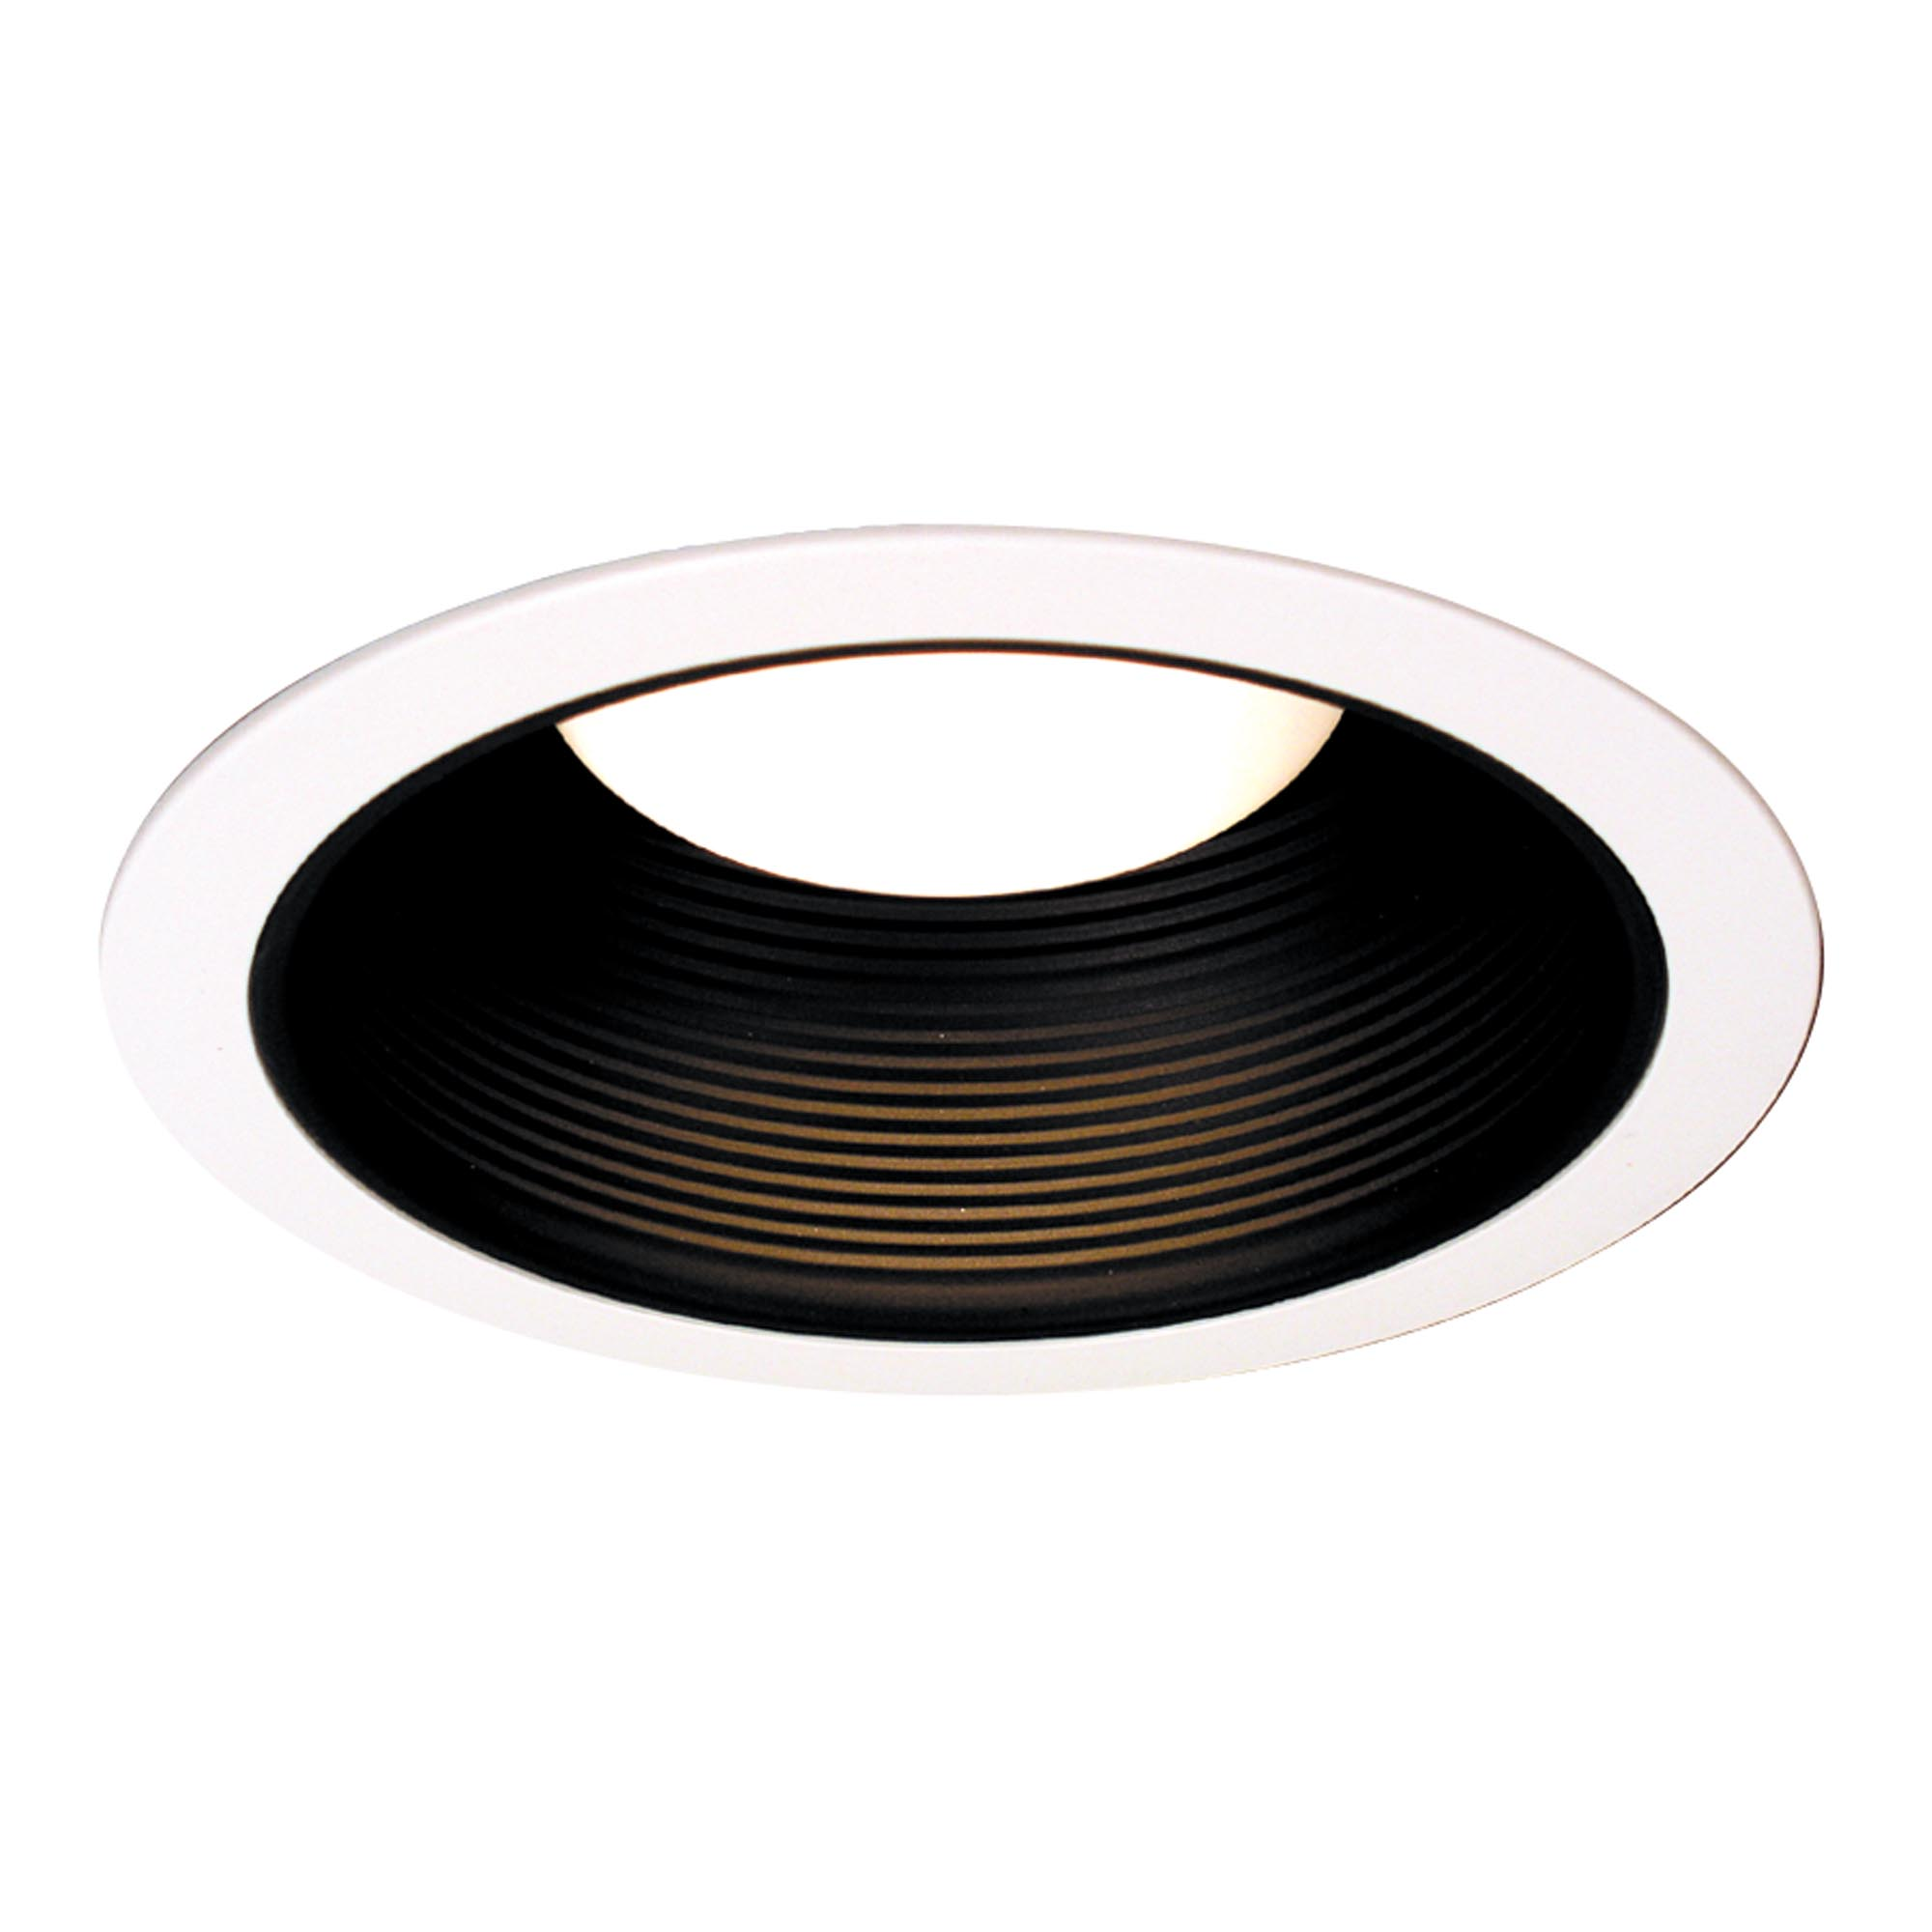 canned ceiling lights photo - 3